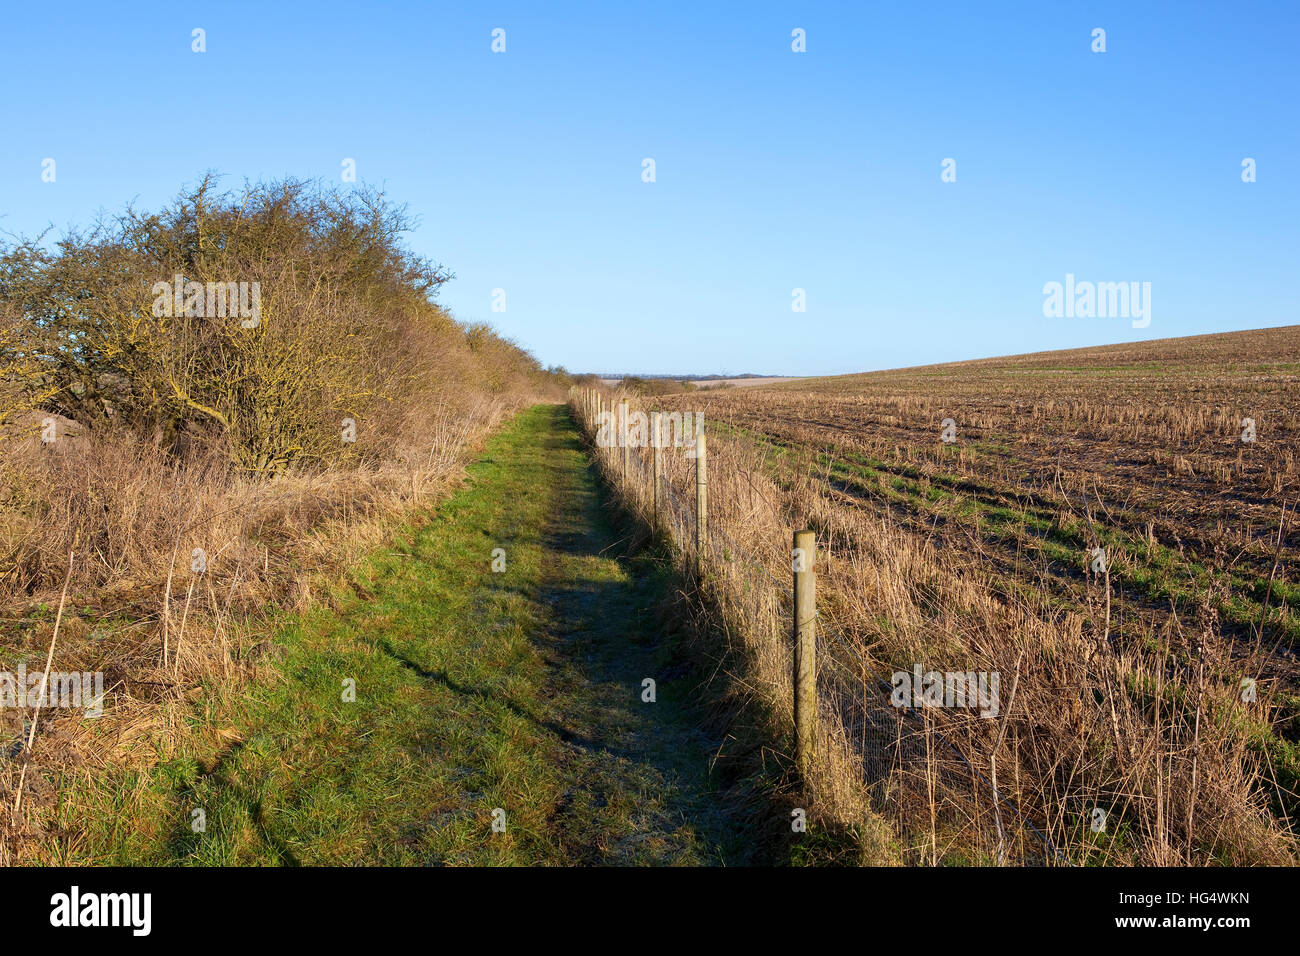 A grassy bridleway with a hawthorn hedgerow and wire fence in a Yorkshire wolds landscape under a clear blue sky - Stock Image